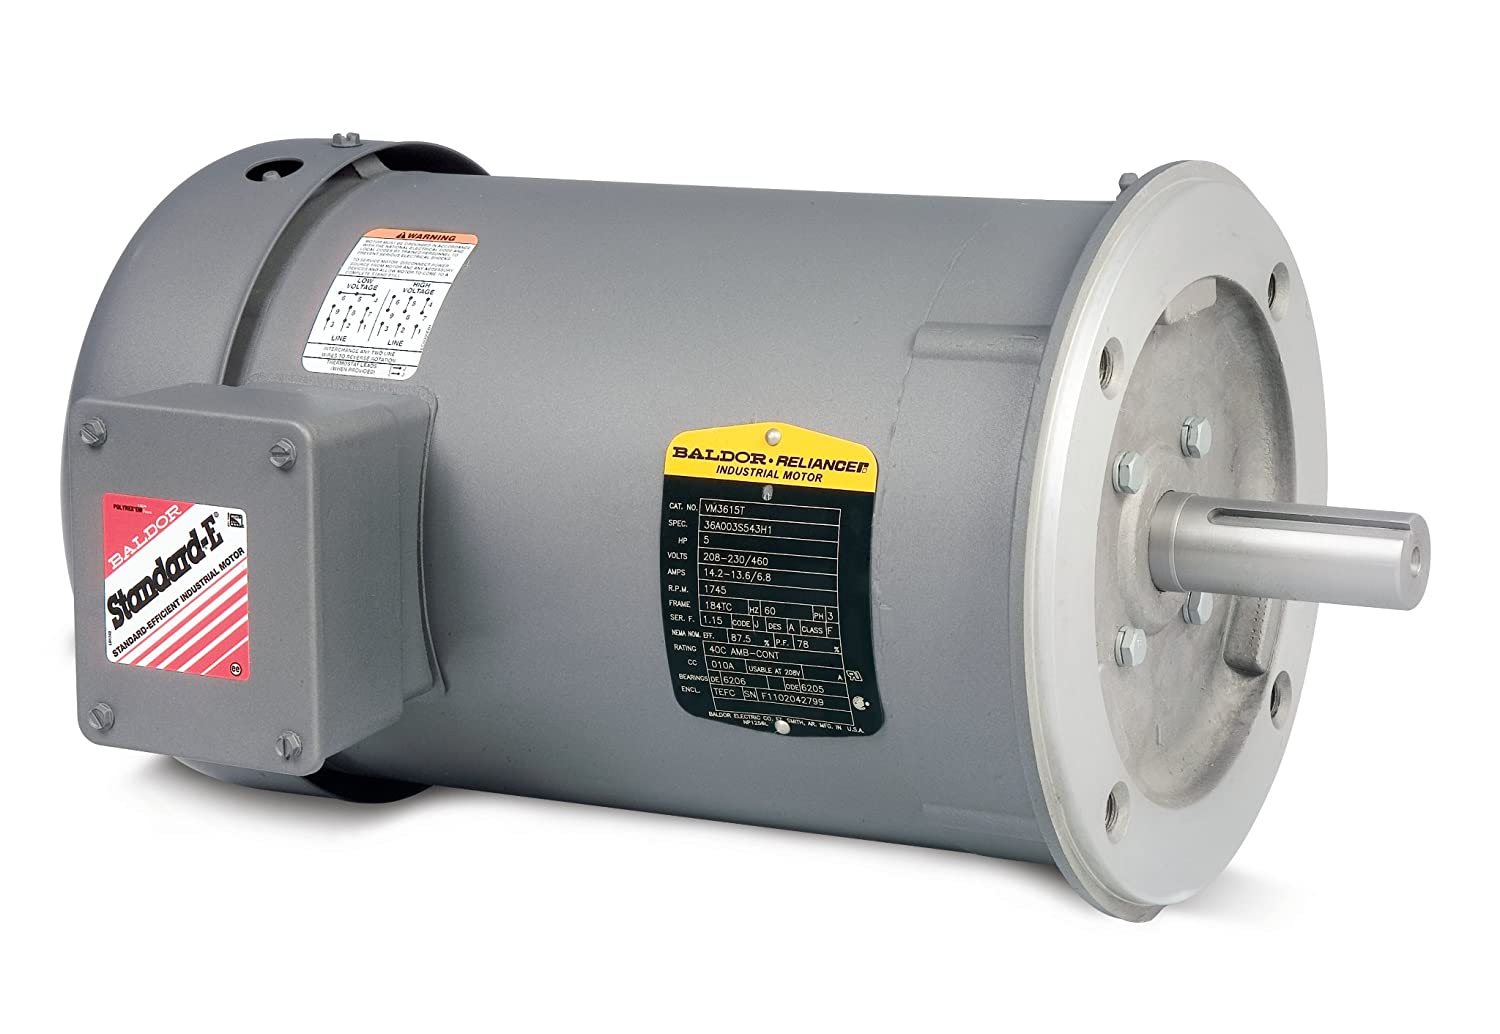 BALDOR VM3537 General Purpose Motor, 3-Phase.5 HP at 60 Hz, Totally Enclosed, C-Face, Footless, 3450 RPM, 56C, 3410M, TEFC, F1, 230/460V, Steel